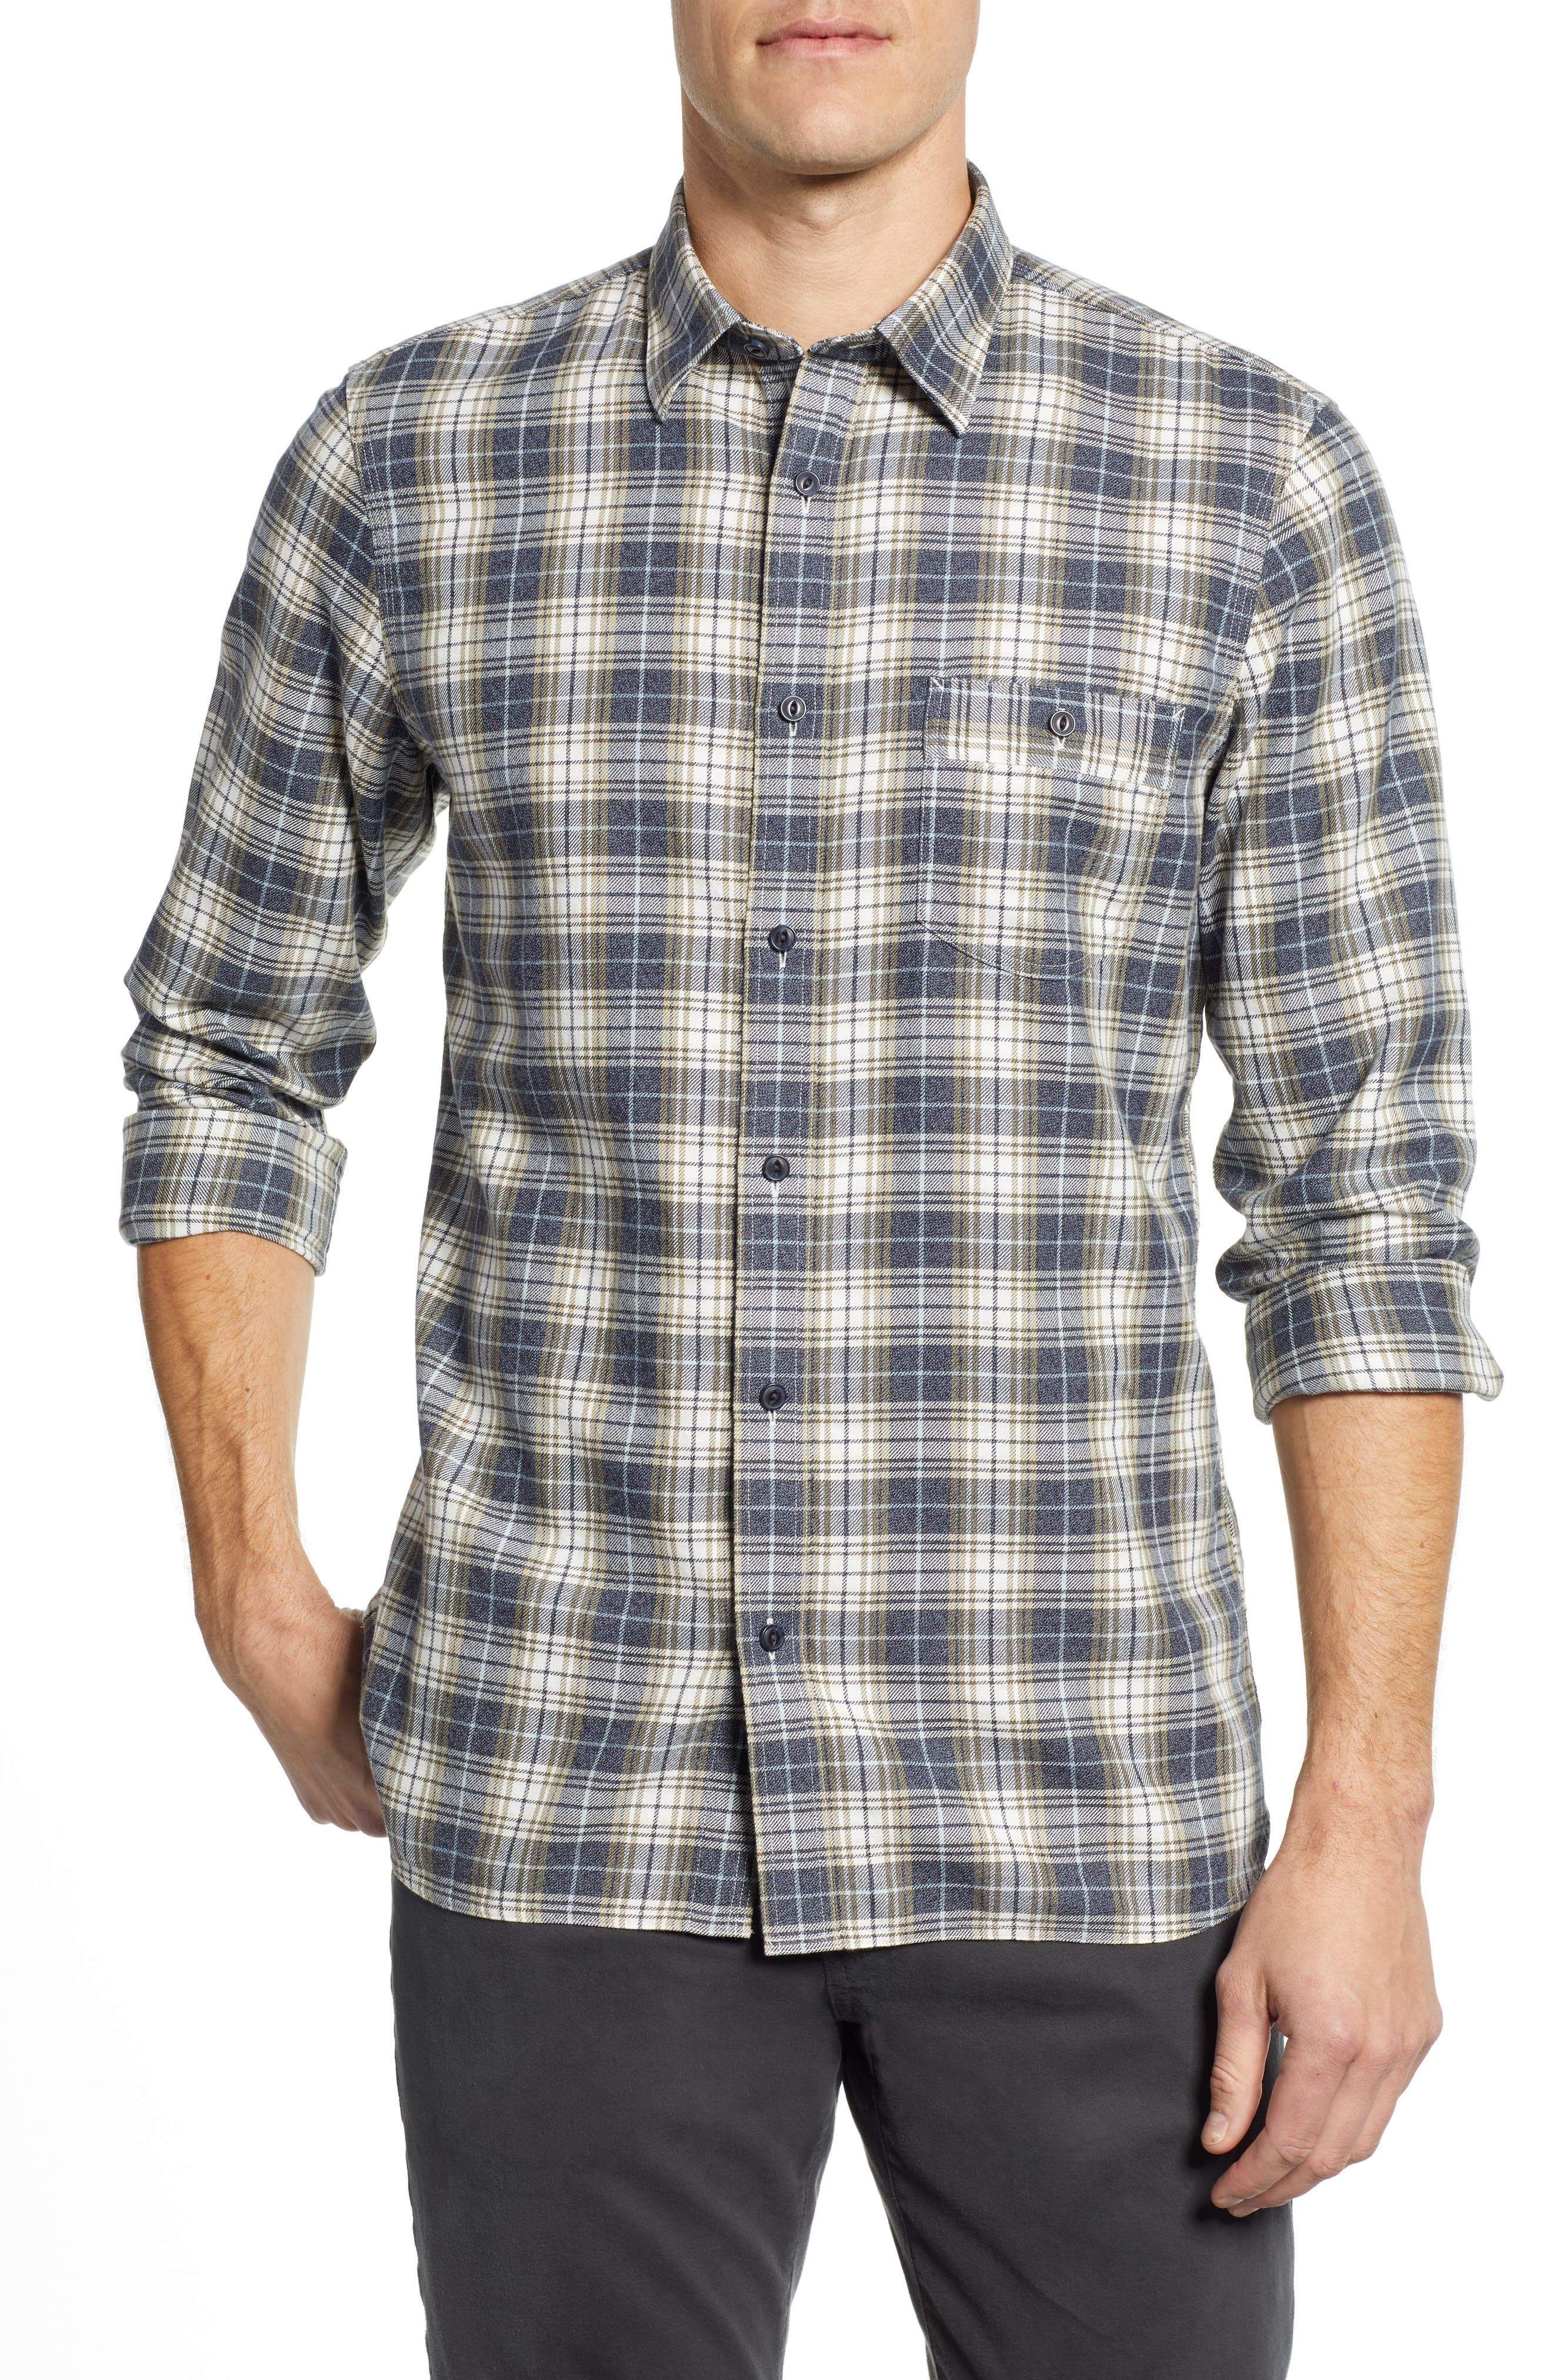 Trucker Regular Fit Plaid Flannel Shirt,                             Main thumbnail 1, color,                             IVORY EGRET TWILL PLAID